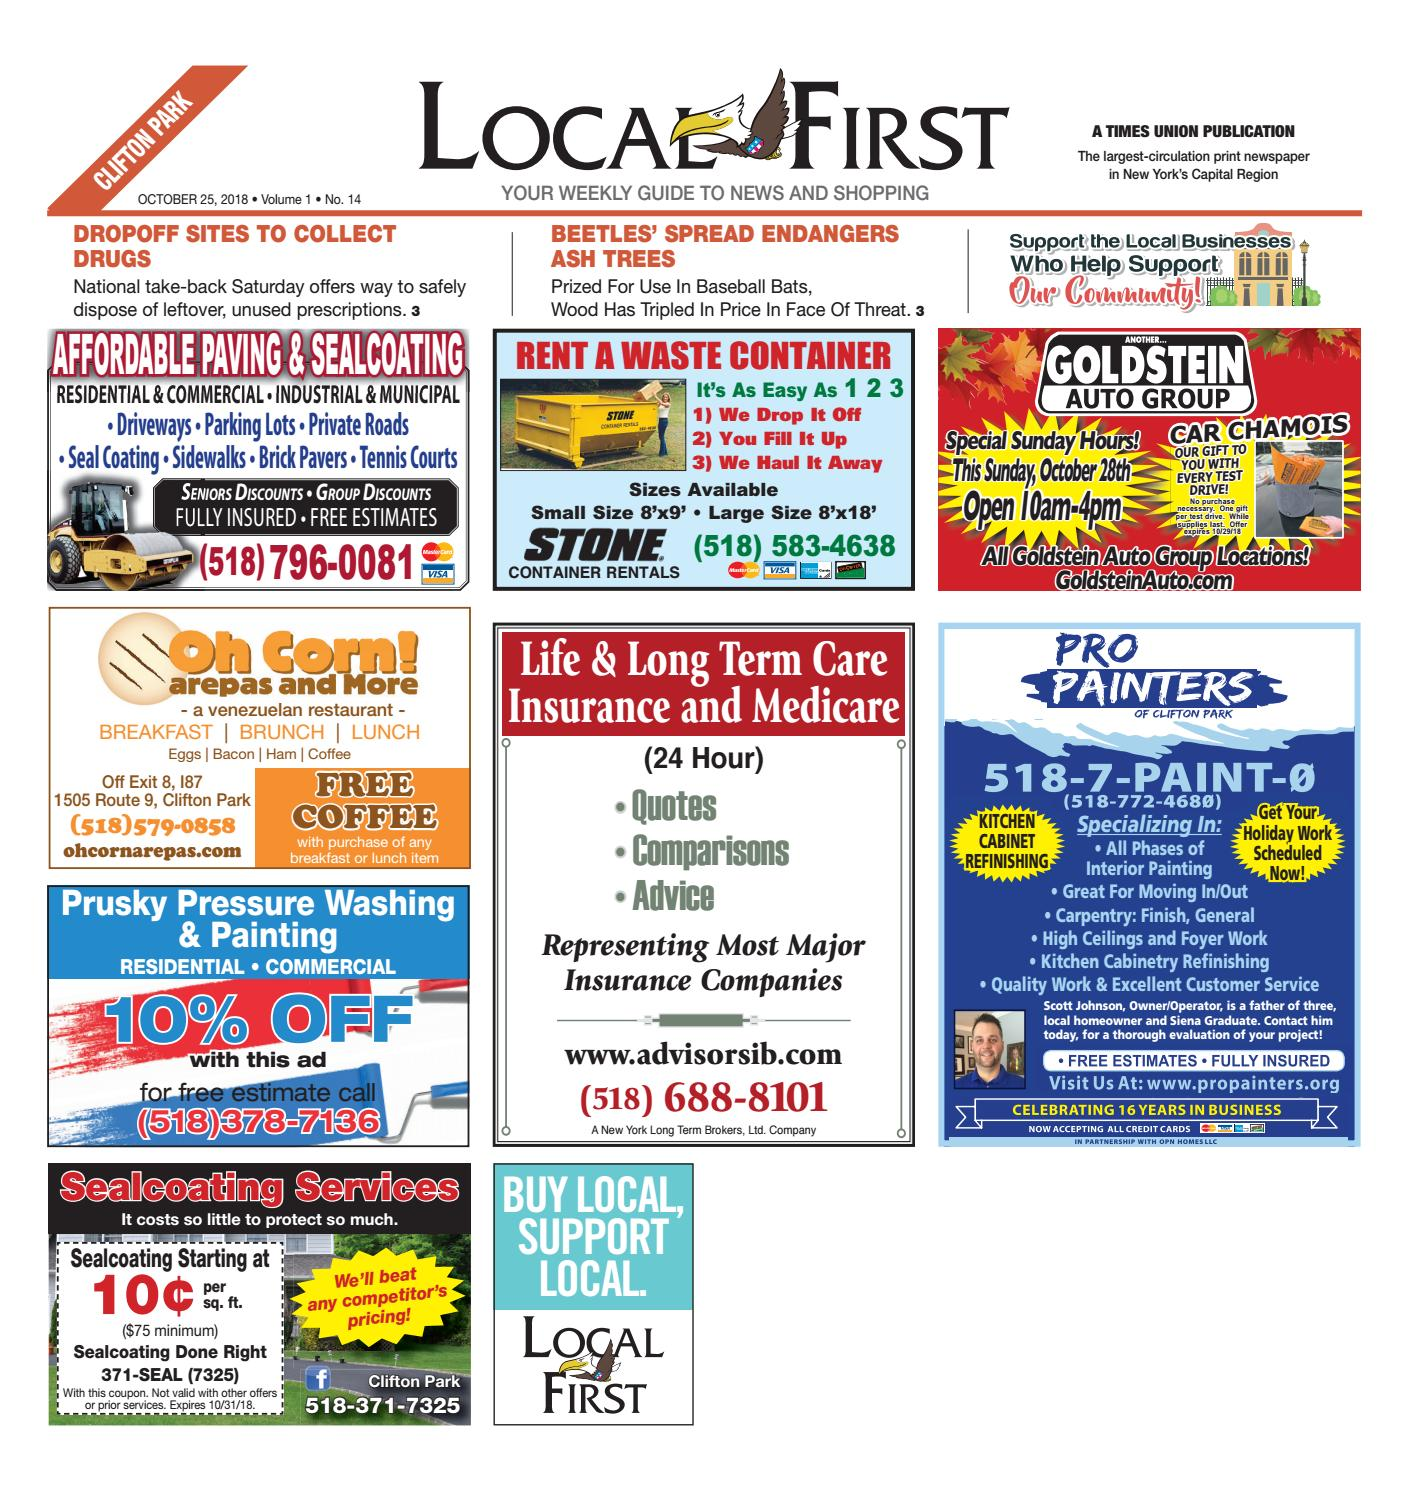 Local First Clifton Park 102518 By Capital Region Weekly Newspapers Issuu